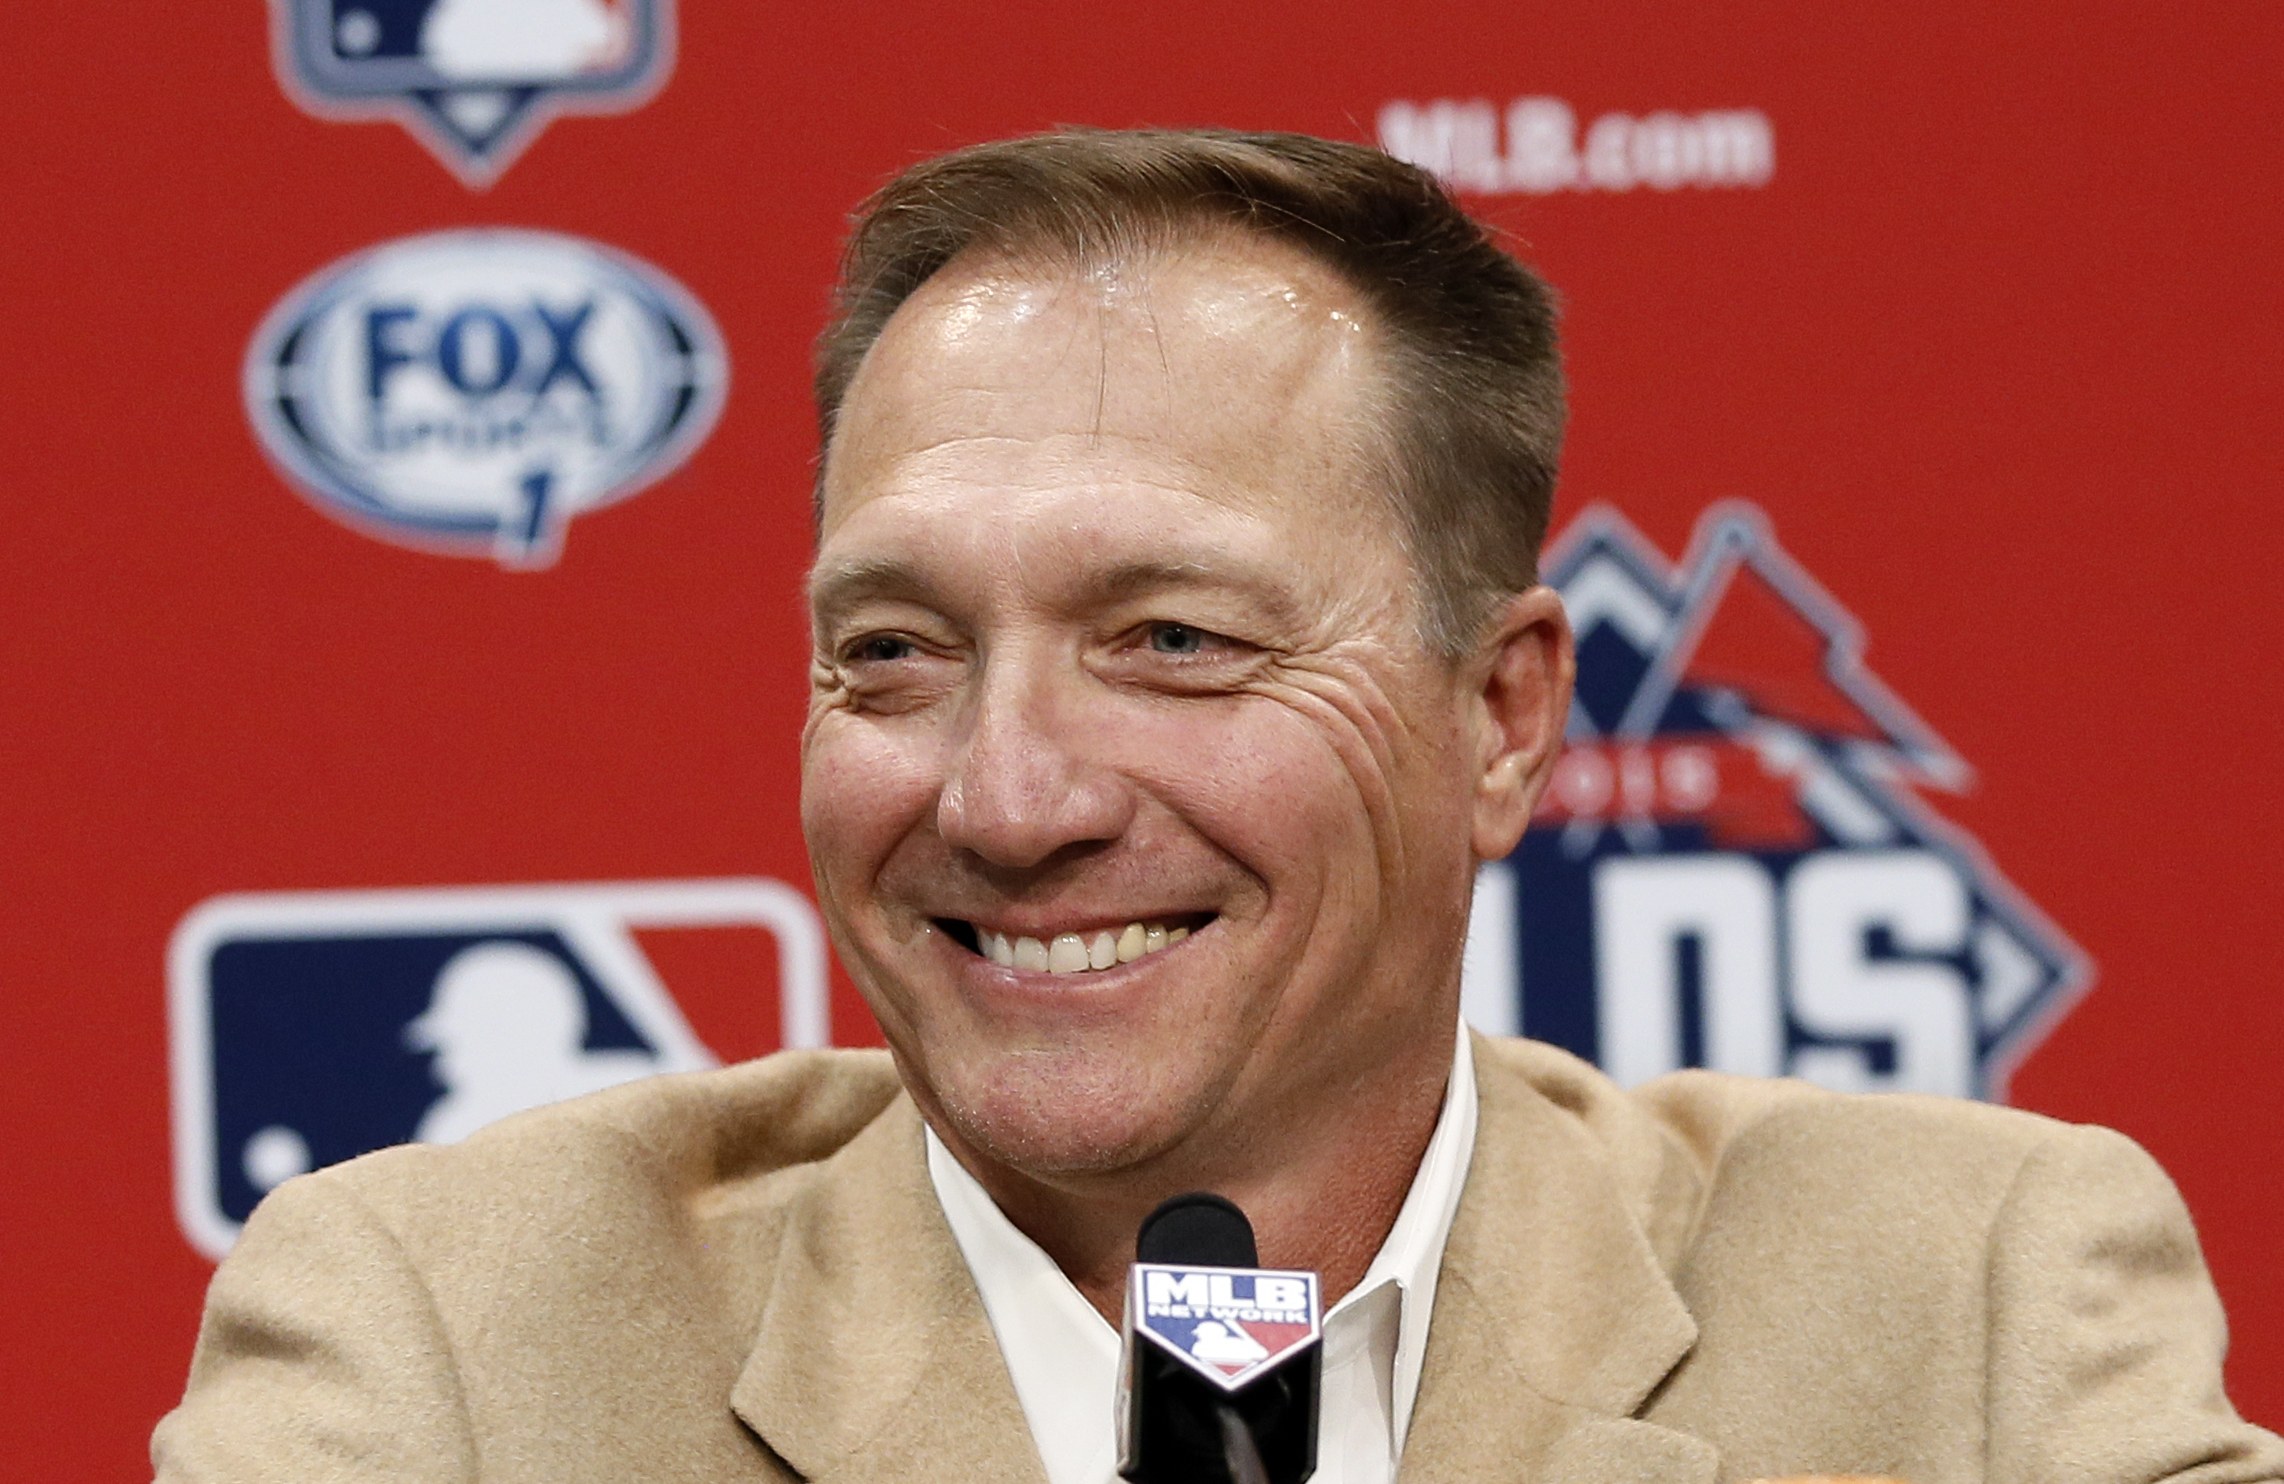 FILE - In this Oct. 13, 2015, file photo, Texas Rangers manager Jeff Banister smiles as he listens to a question during a news conference in Arlington, Texas. Jeff Bannister has been selected the AL Manager of the Year after leading the Texas Rangers to a